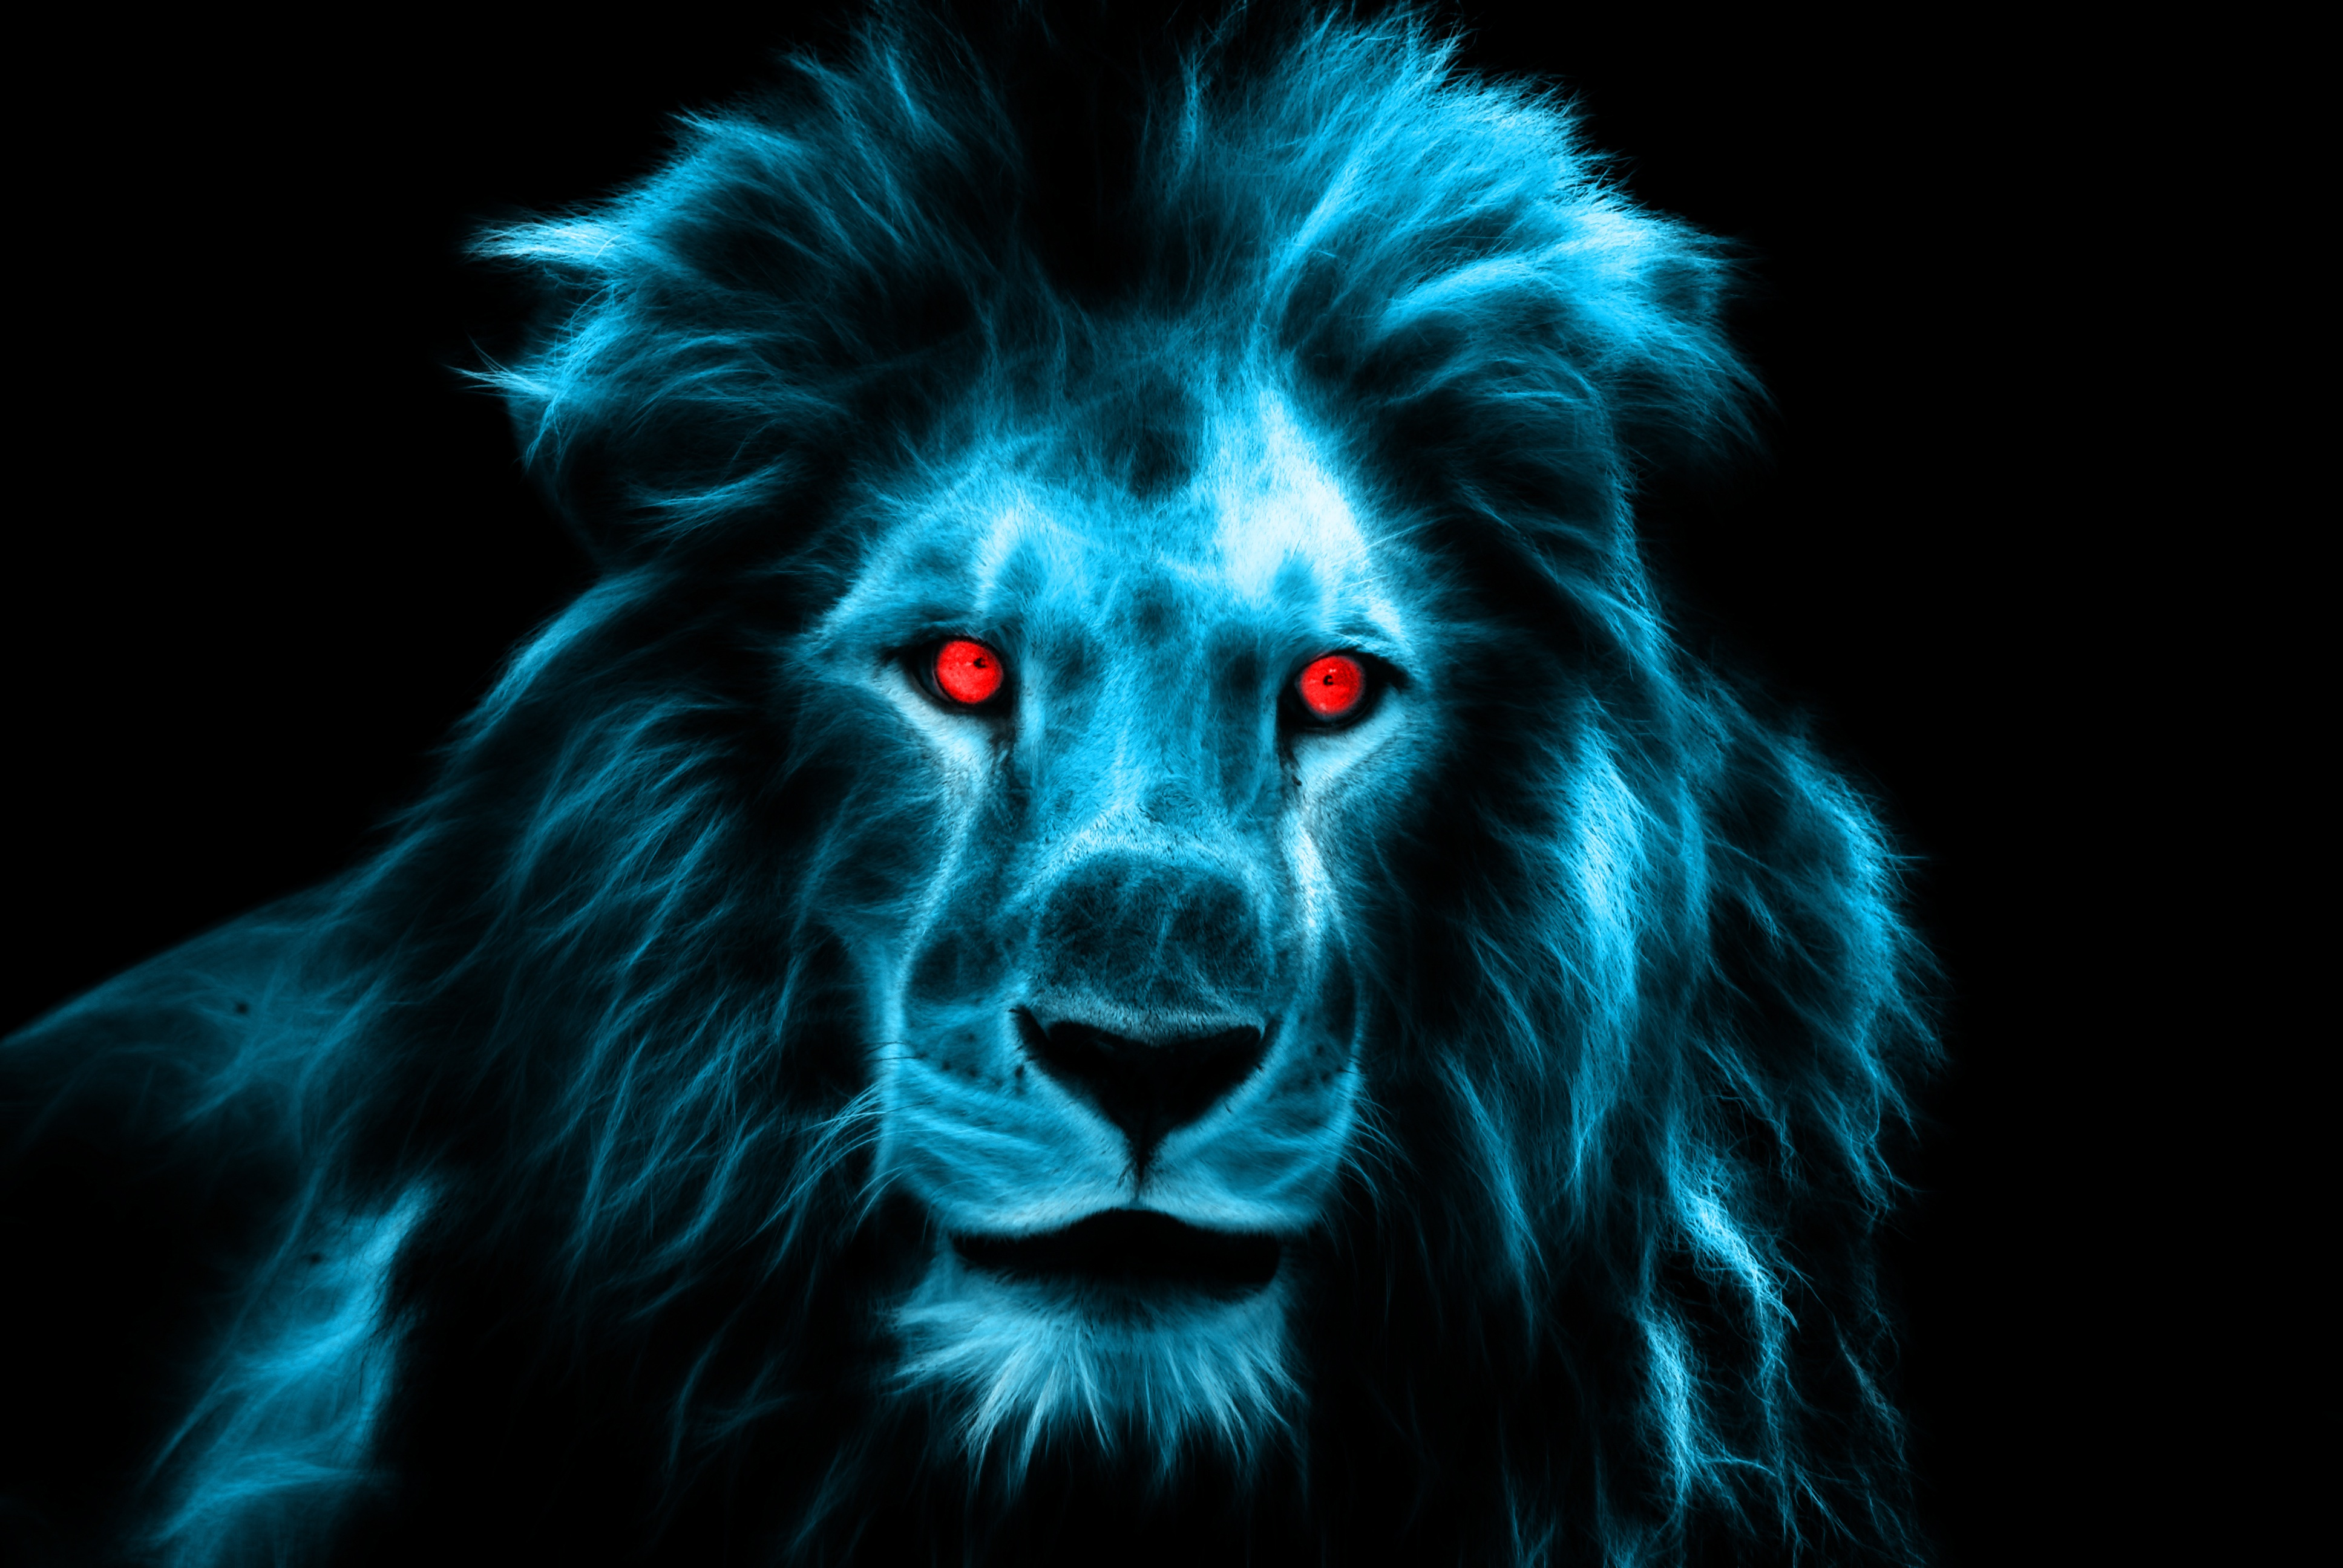 57693 download wallpaper Animals, Lion, Predator, Big Cat, Eyes, Mane screensavers and pictures for free